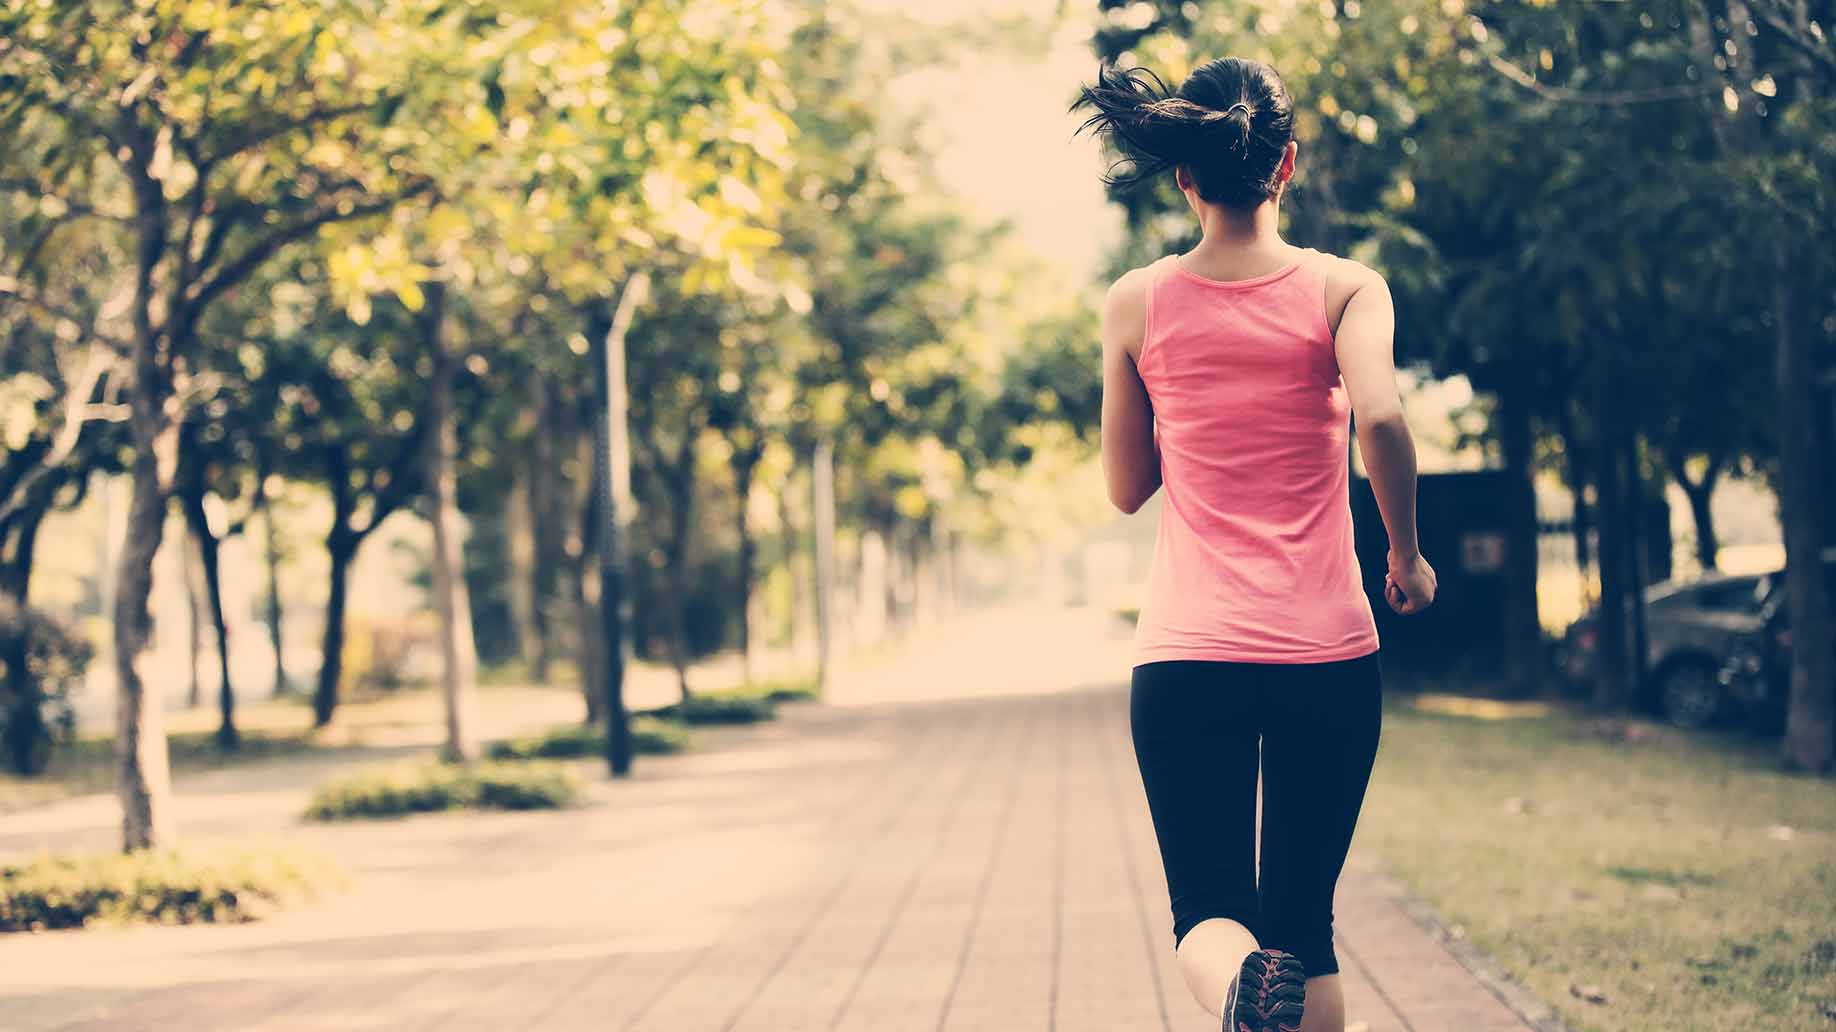 exercise running get moving headaches migraines natural remedies